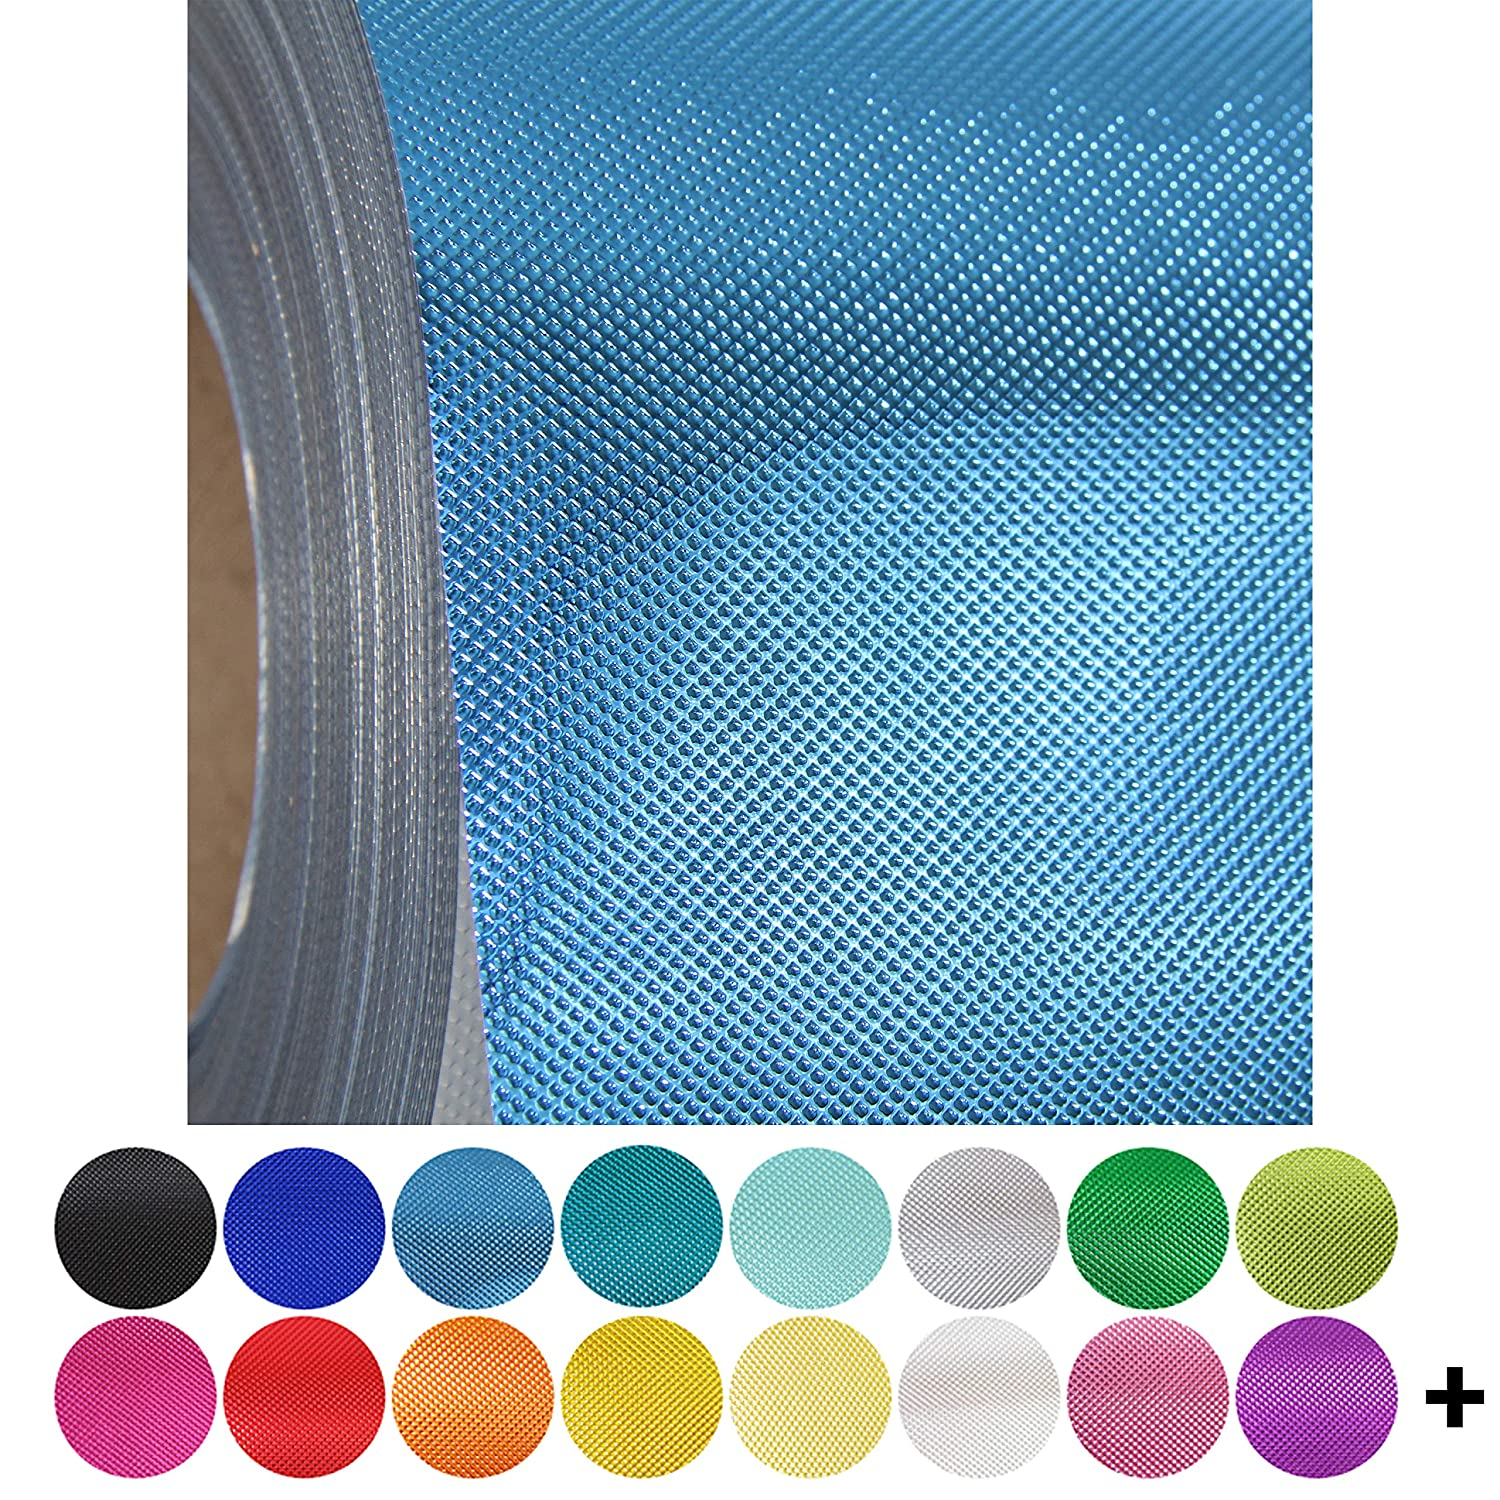 2 15x 20 sheets Metallics Over 130 Colors Threadart Embossed Available in Solids Two Embossed Aqua Metallic Heat Transfer Vinyl Film HTV Neon Glitter Flock Holographic